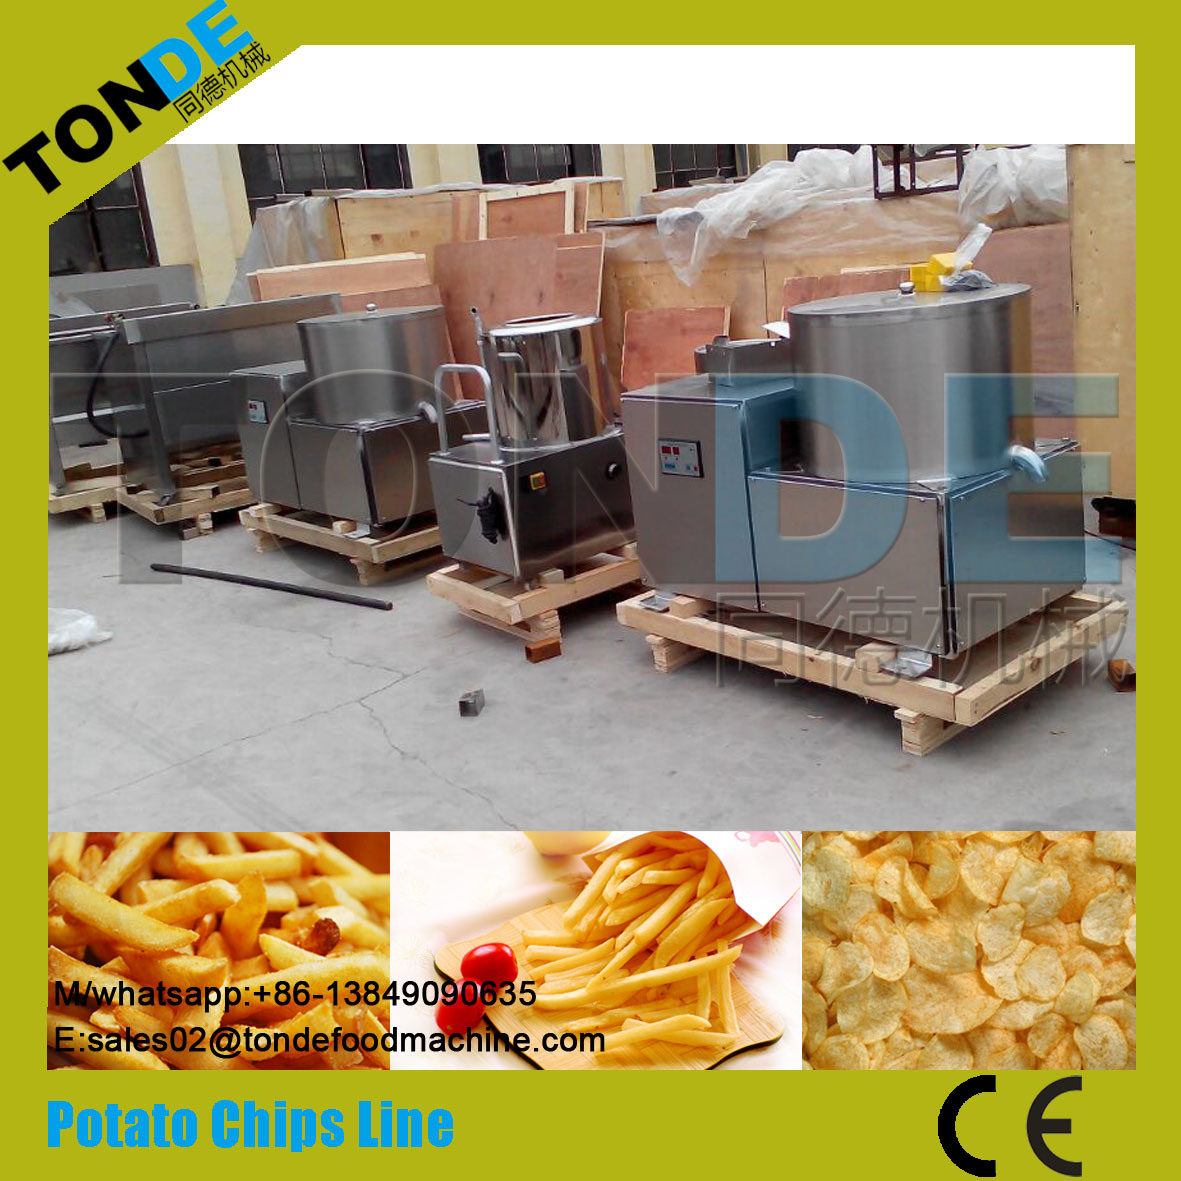 Semi Automatic Stainless Steel Electric Potato Sticks Production Line